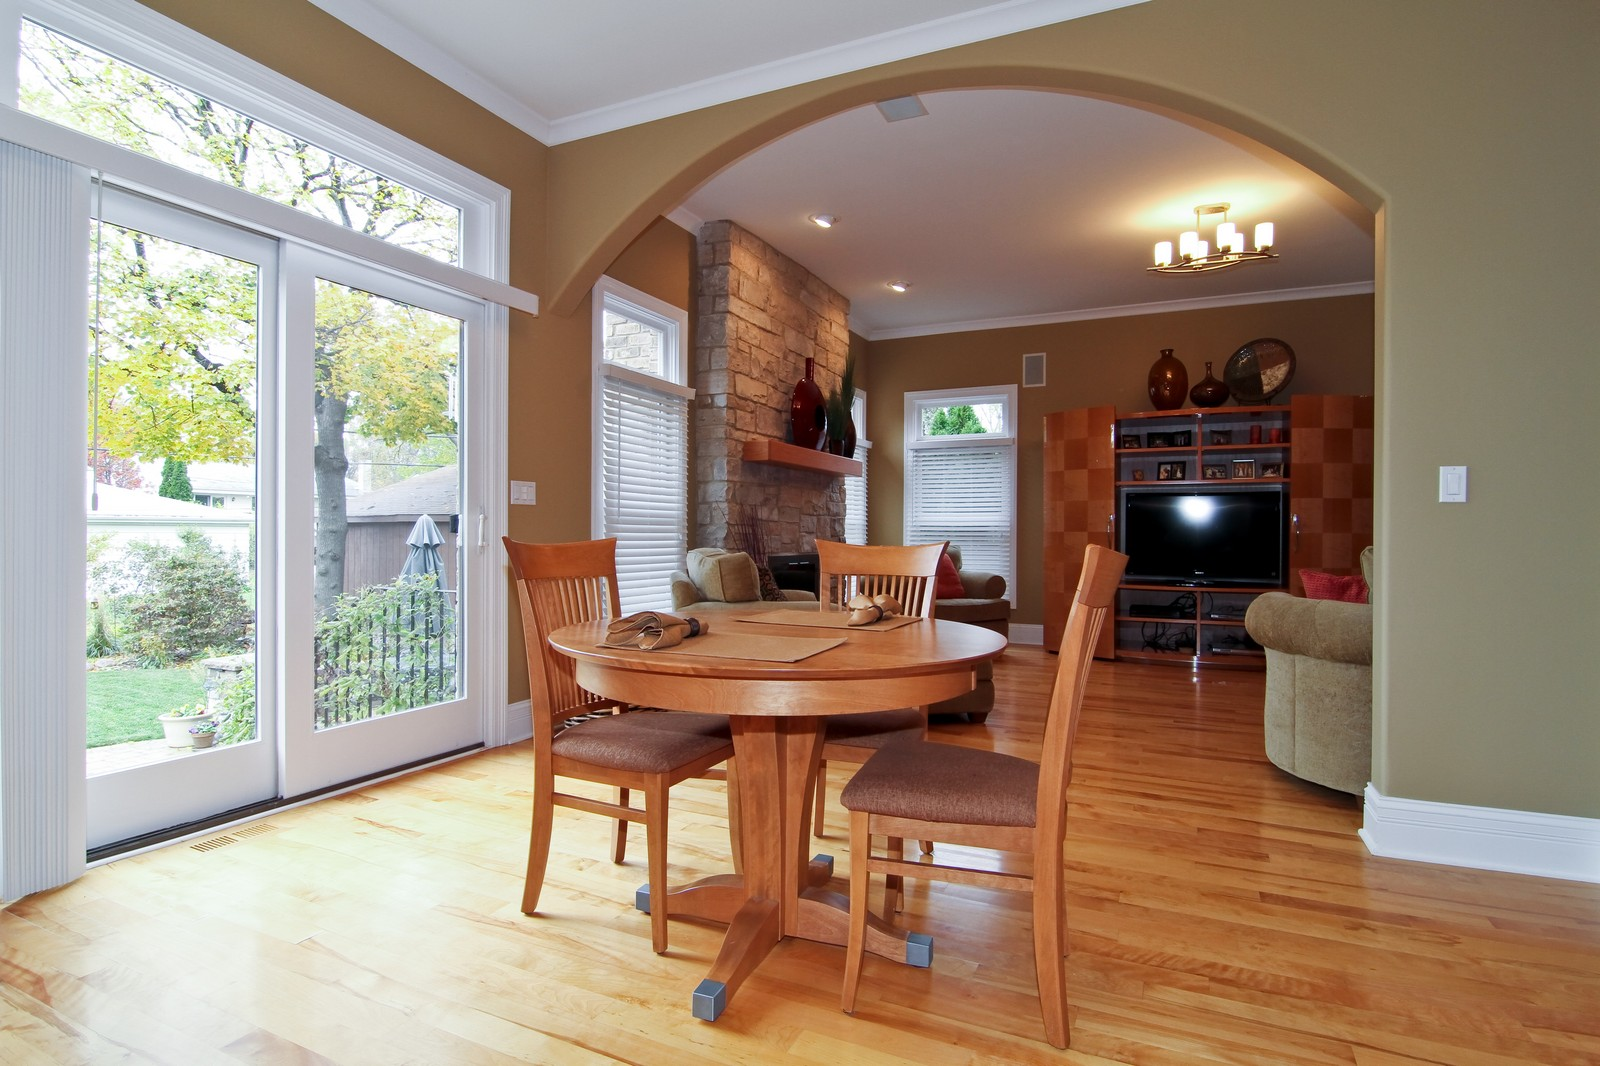 Real Estate Photography - 550 S Linden Ave, Elmhurst, IL, 60126 - Breakfast Area